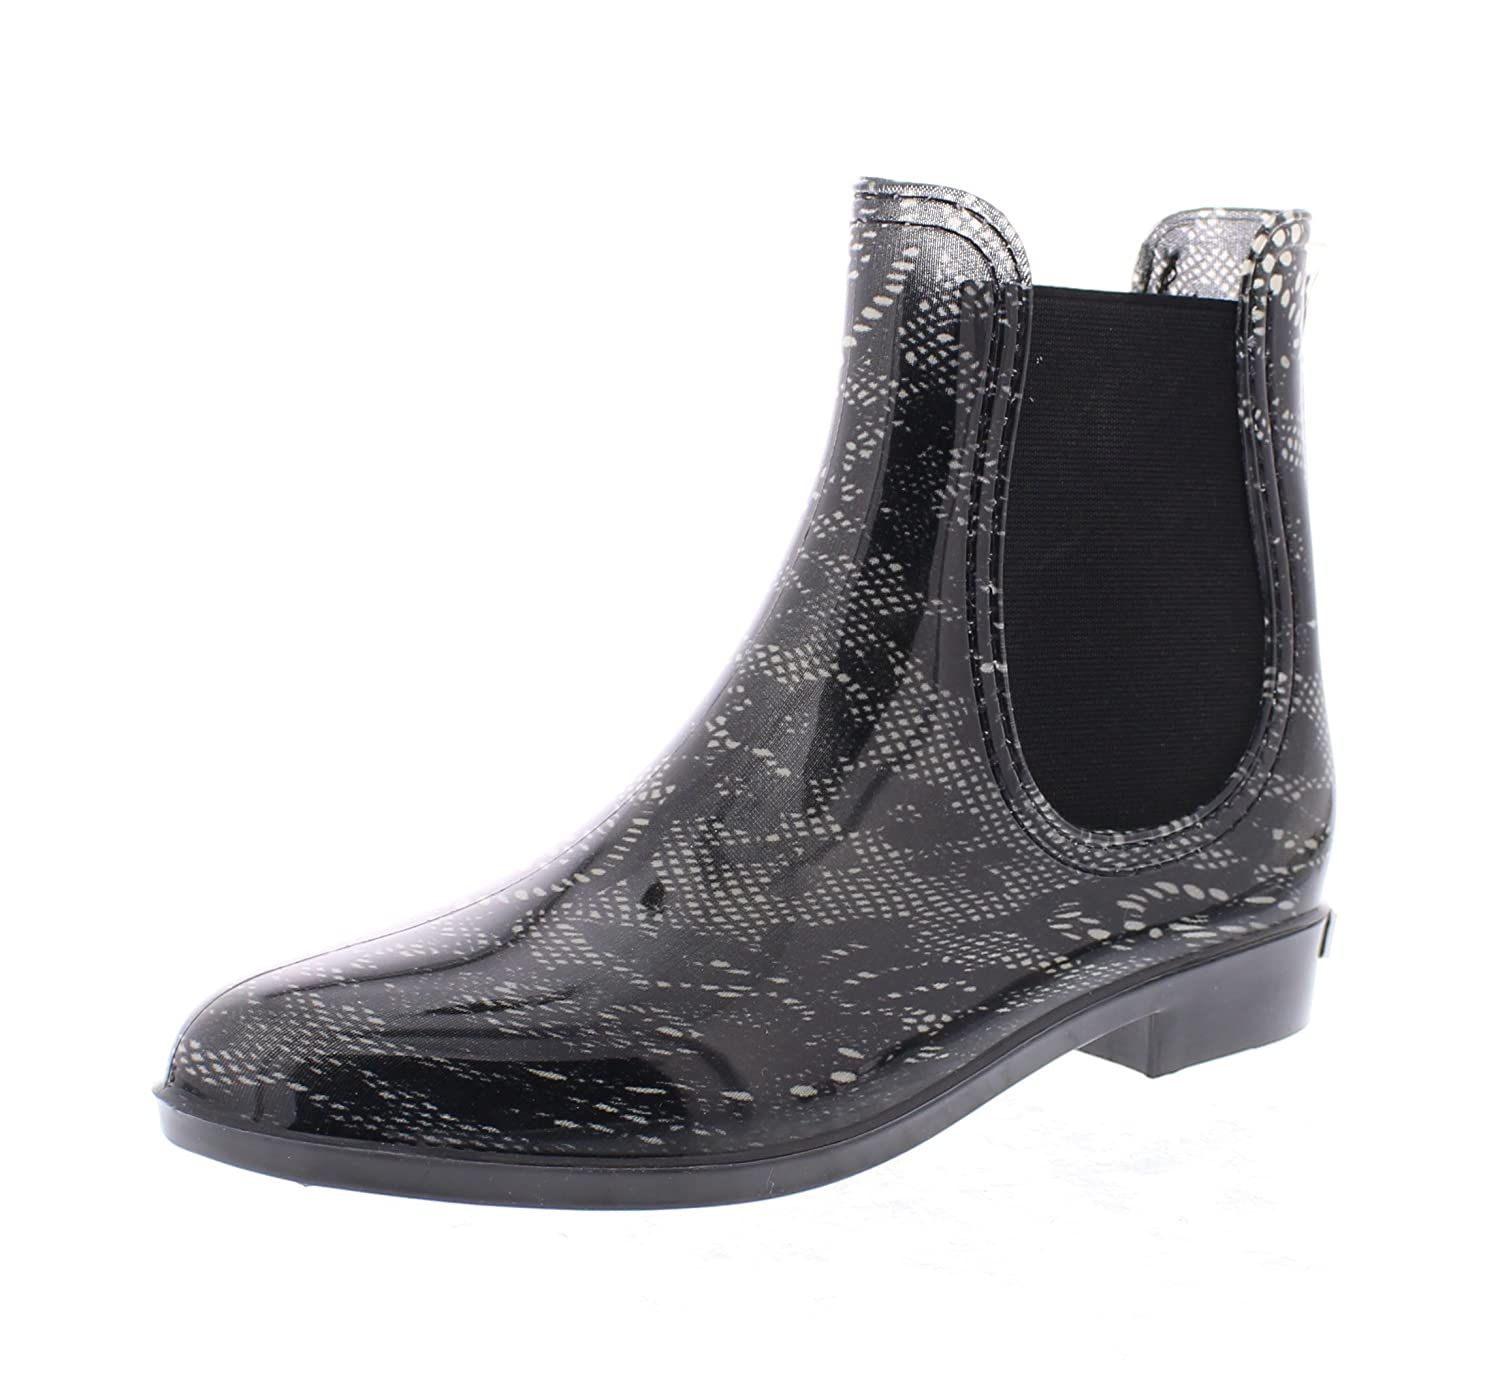 Marilyn Monroe Women's Ankle Length Short Chelsea Rainboot Shoes, Waterproof Jelly Pull On Welly Boots B078SNK4FQ 7 B(M) US Black Lace